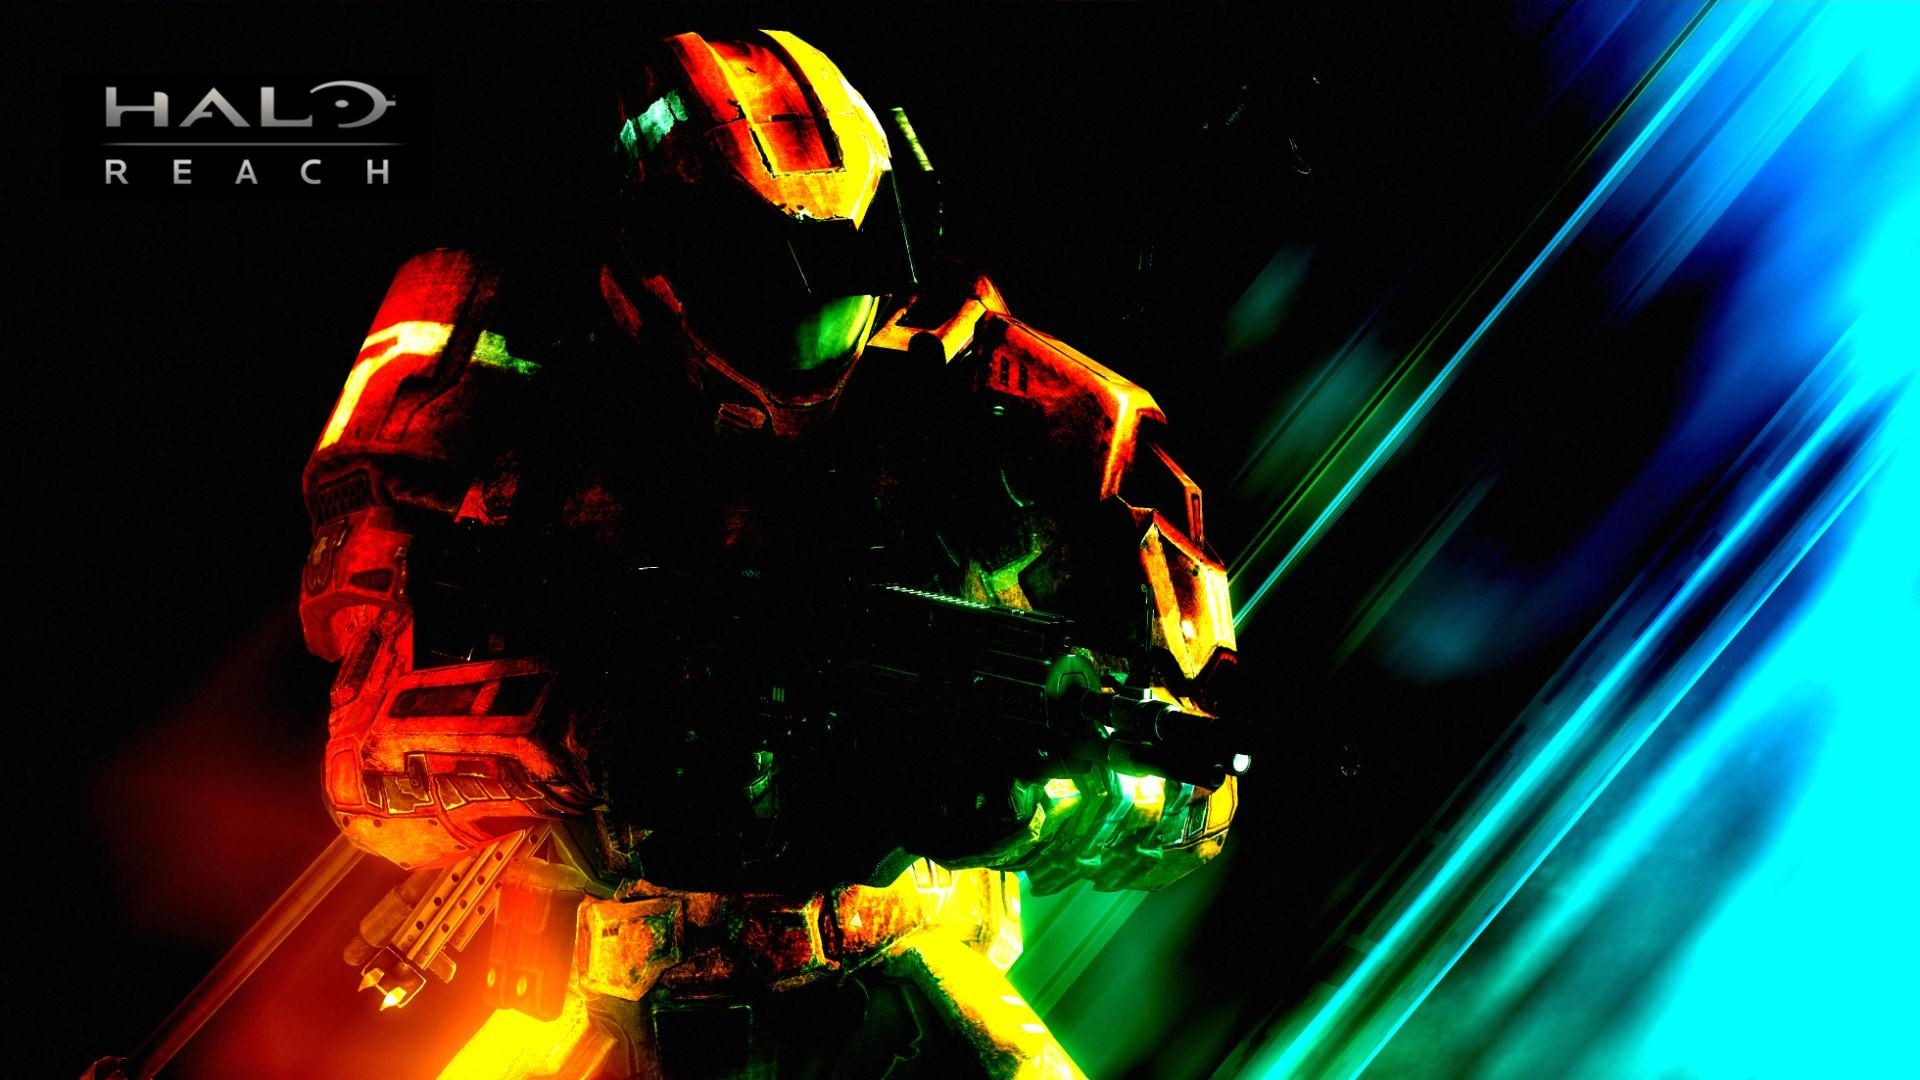 video game halo Wallpaper Backgrounds